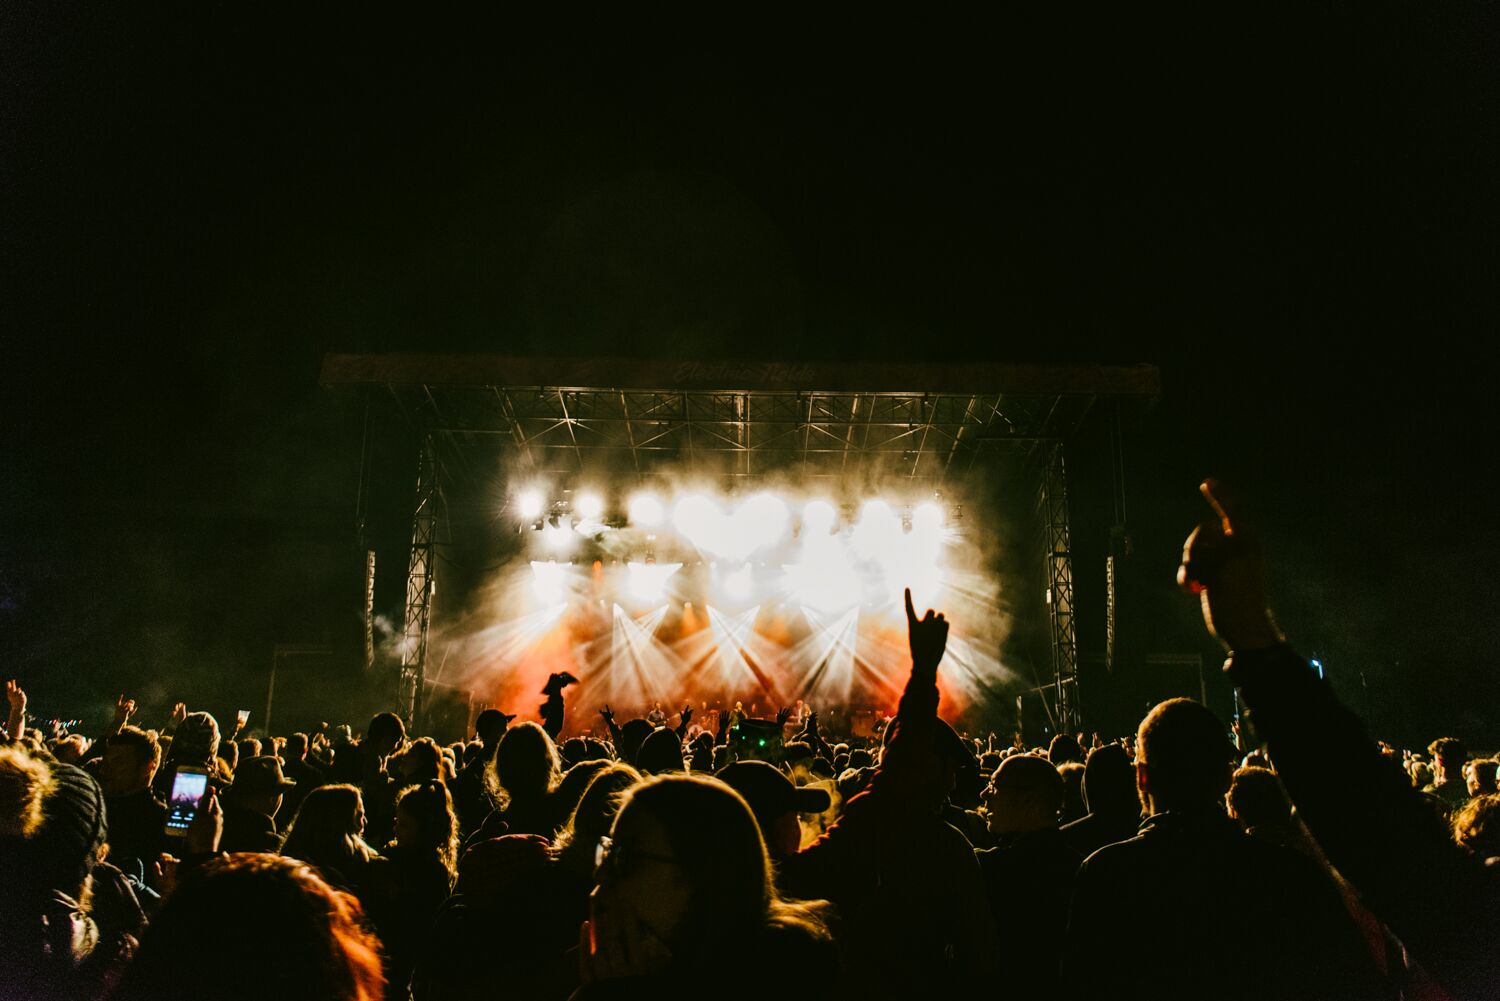 ELECTRIC FIELDS 2019  PICTURE BY: GAELLE BERI